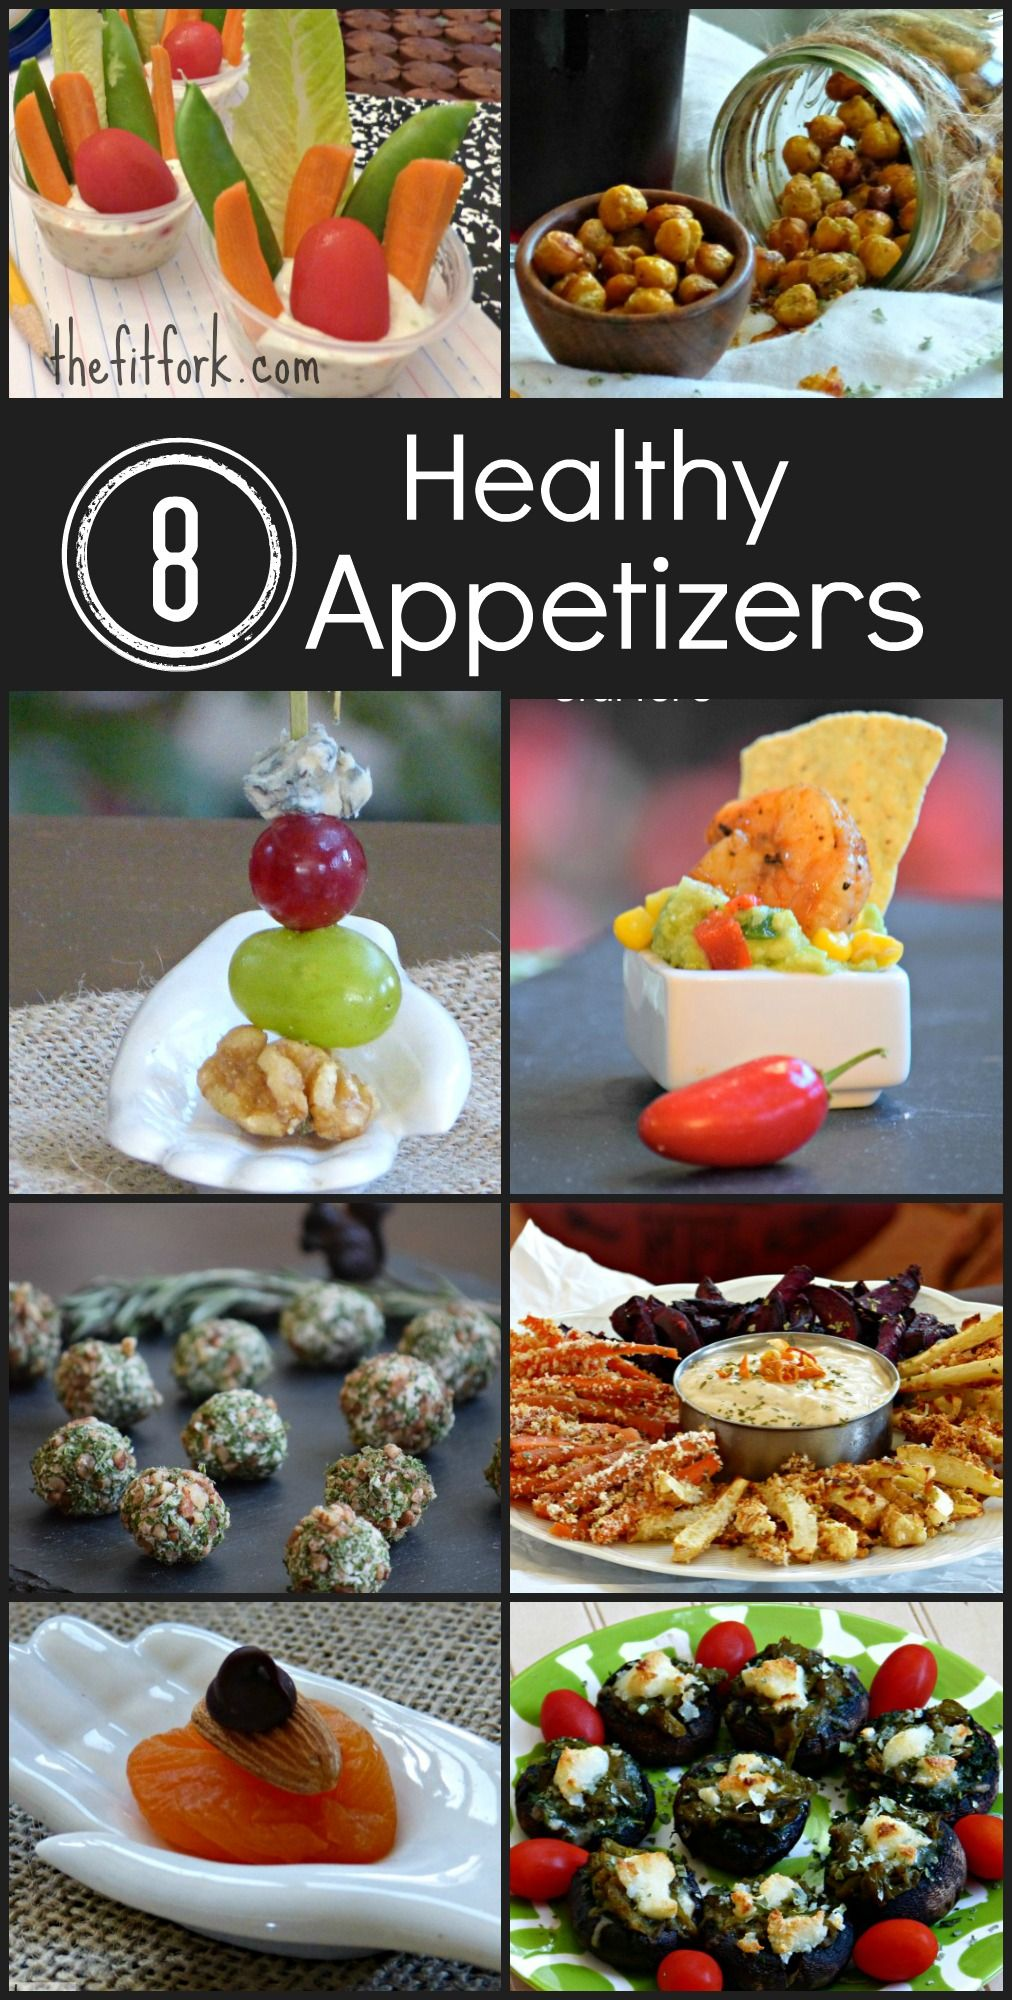 Eight Healthy Appetizers Under 100 Calorires Perfect Finger Foods